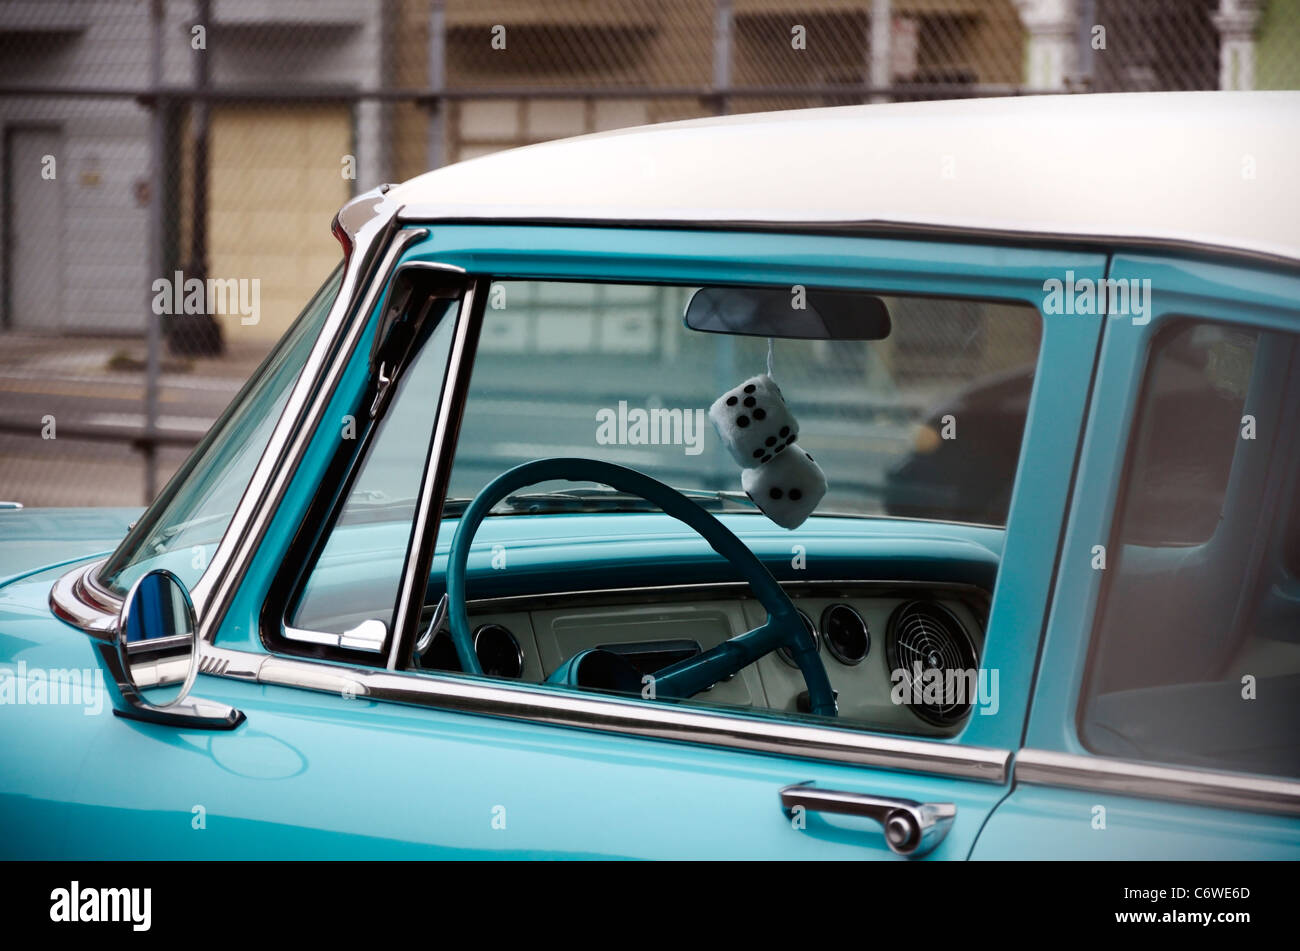 fluffy dice hanging from a car's rear view mirror - Stock Image